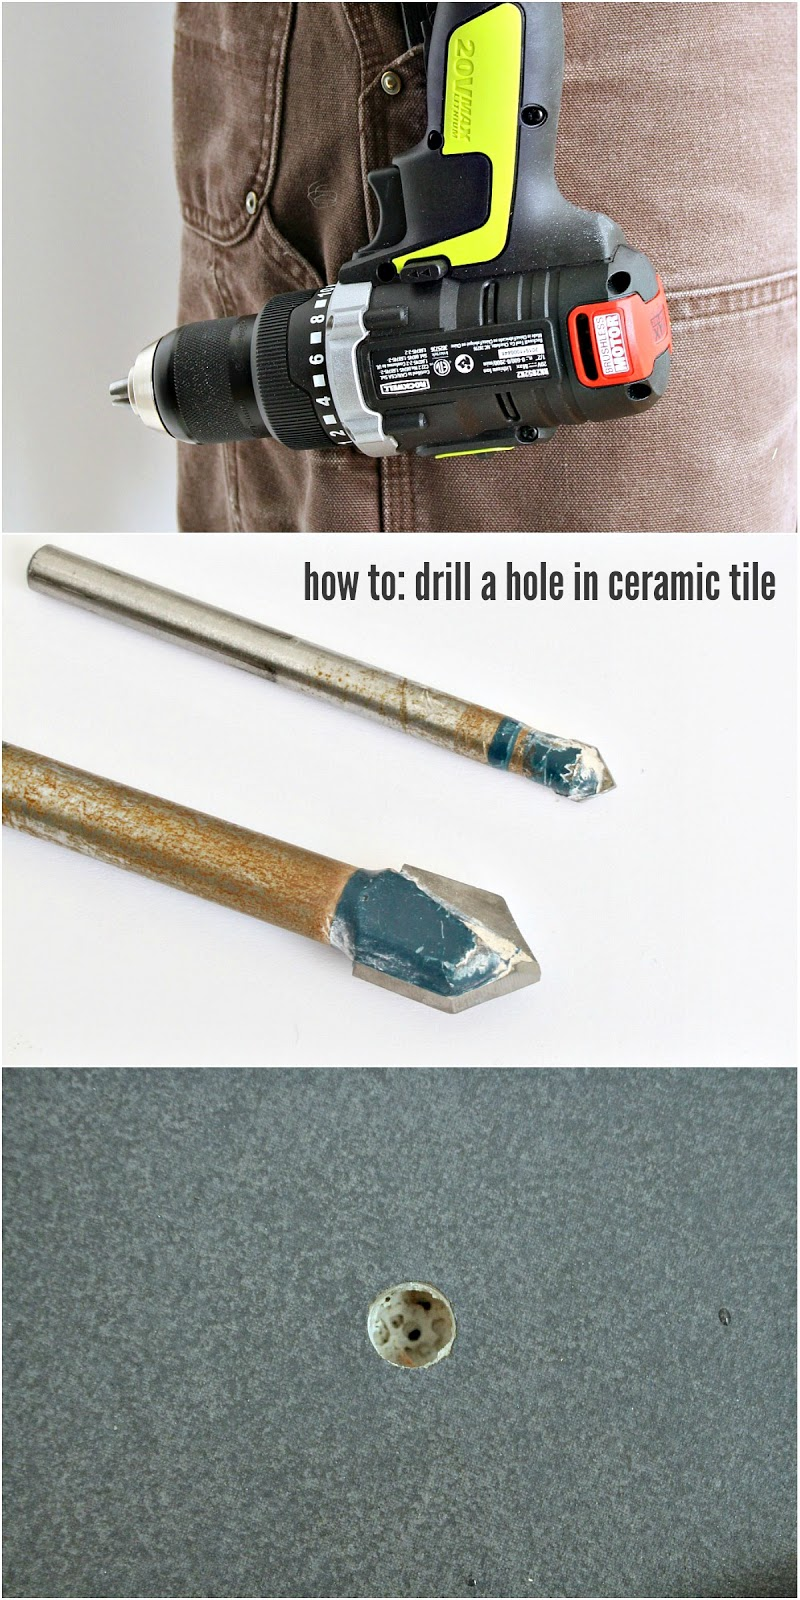 How to Drill a Hole in Ceramic Tile | Dans le Lakehouse